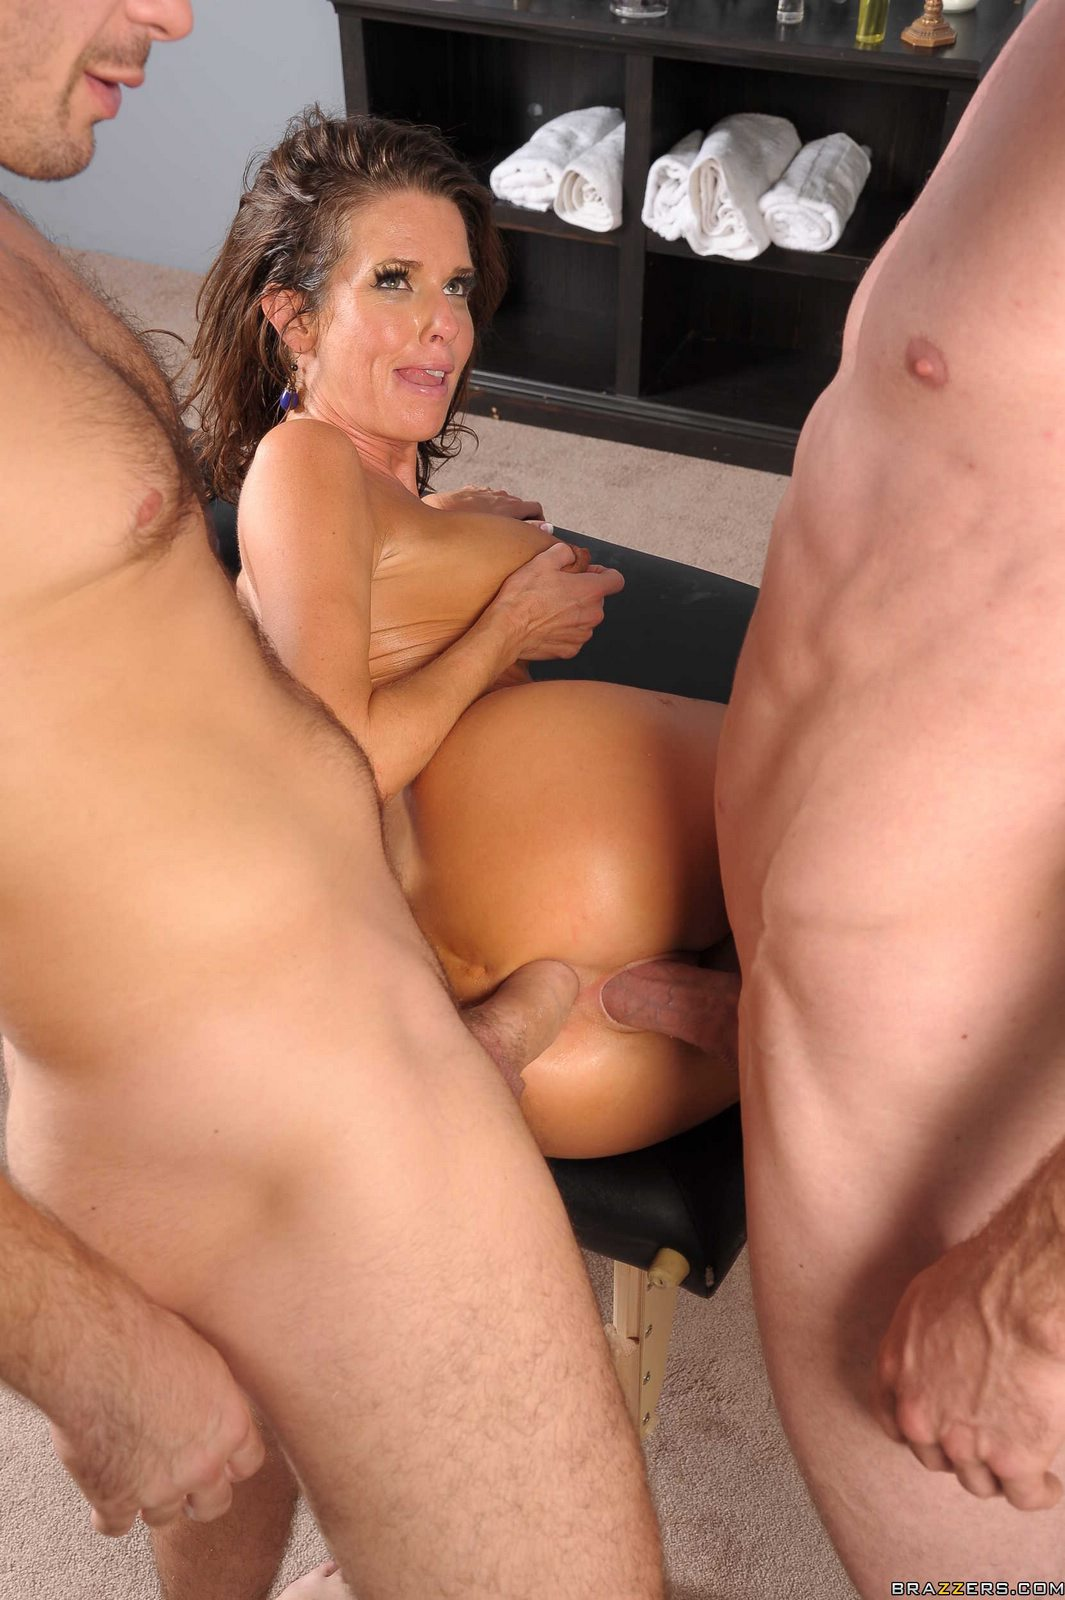 image Hot milf hard fucking a guy s ass with strapon and cum drinking